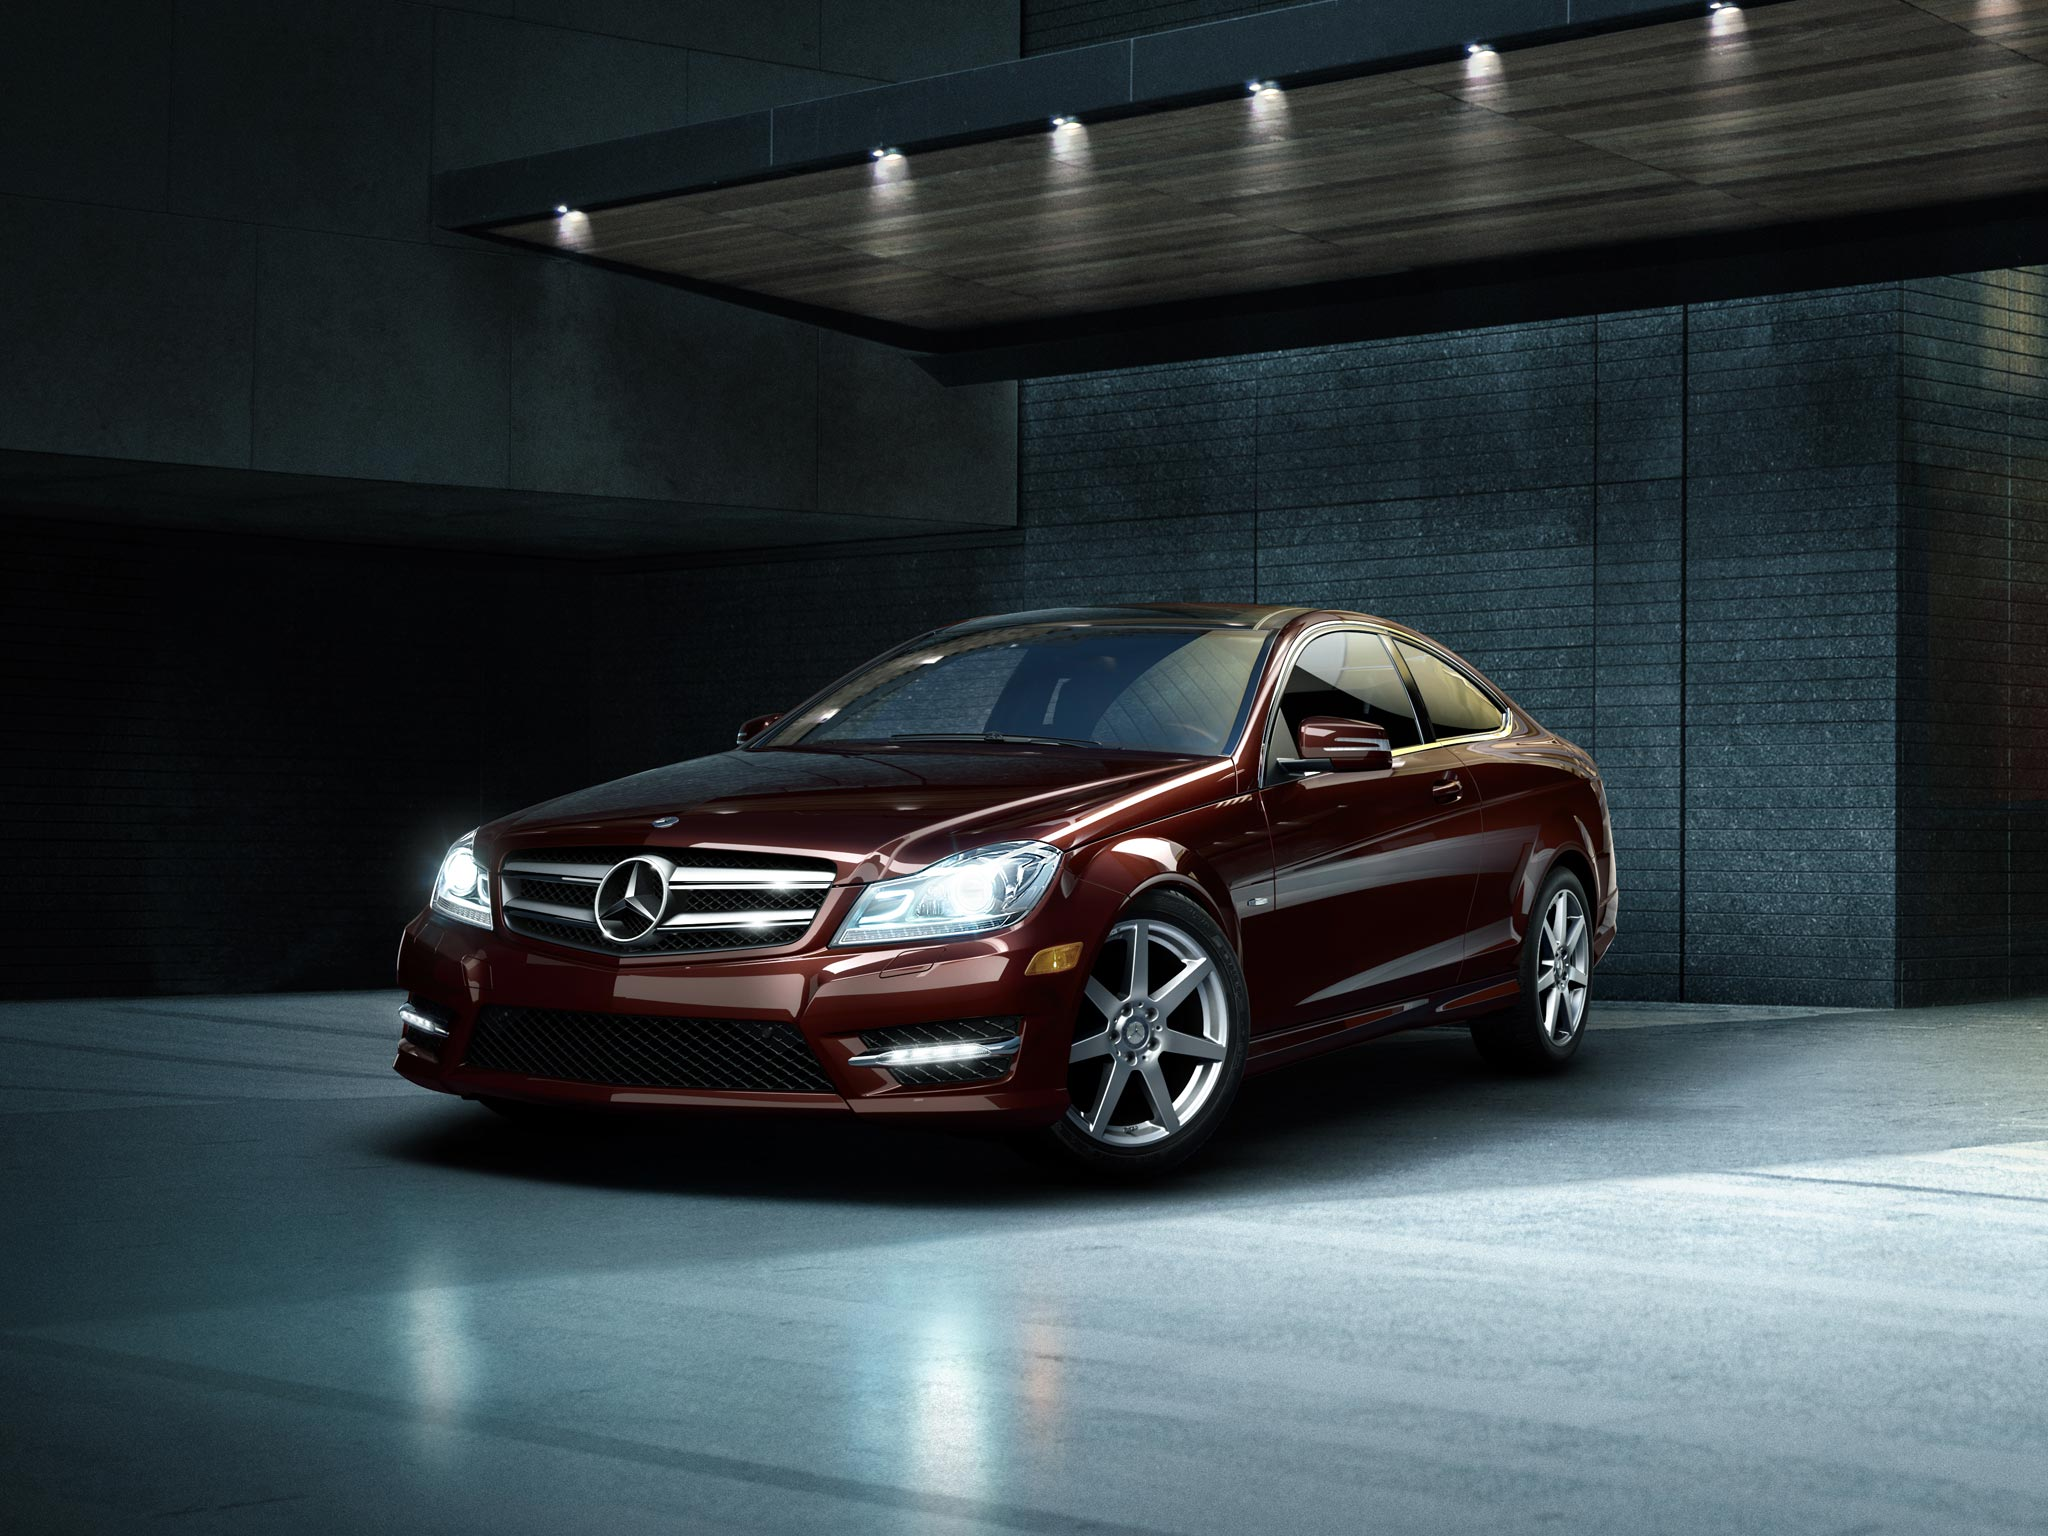 Fields motorcars mercedes benz usa releases impressive for Fields mercedes benz